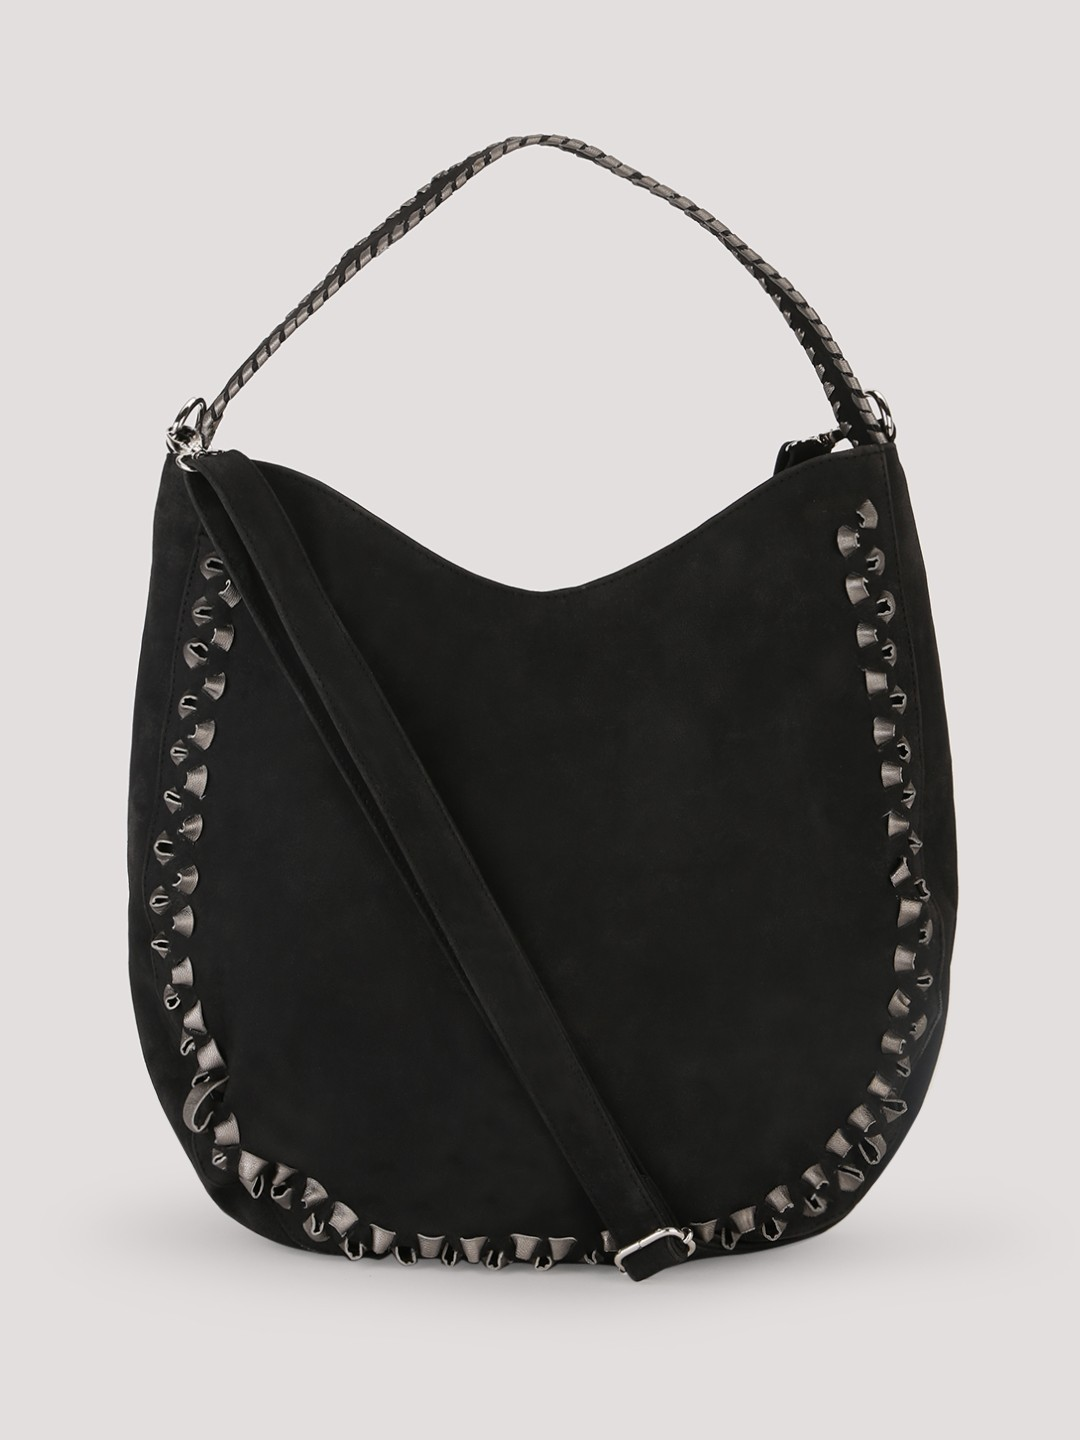 Buy Shoulder Bags Online in India for Men & Women